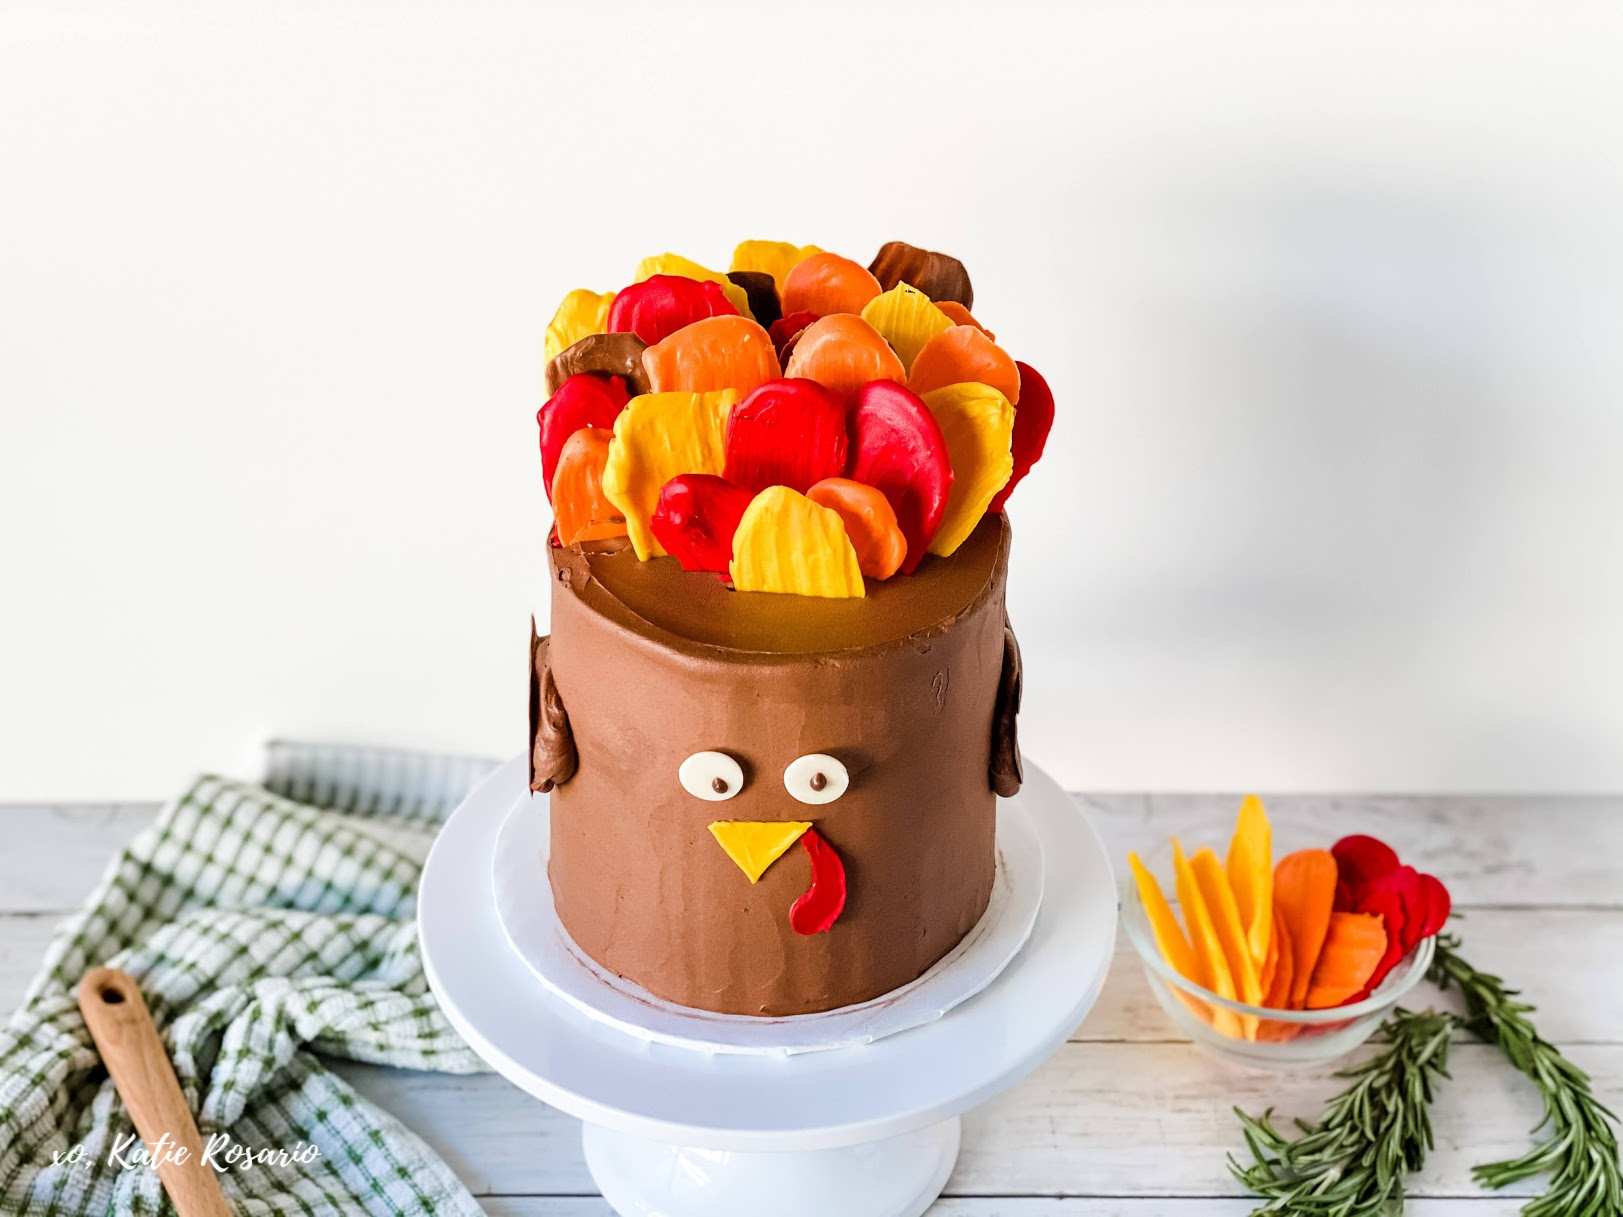 Learn how to make this fun and festive Thanksgiving Turkey Cake. Pumpkin spice lattes, pumpkin spice candles, and pumpkin spice cakes! This adorable Turkey Cake will make a beautiful addition to your Thanksgiving table! #xokatierosario #katierosariocakes #cakedecoratingtips #thanksgivingcake #fallcakeideas